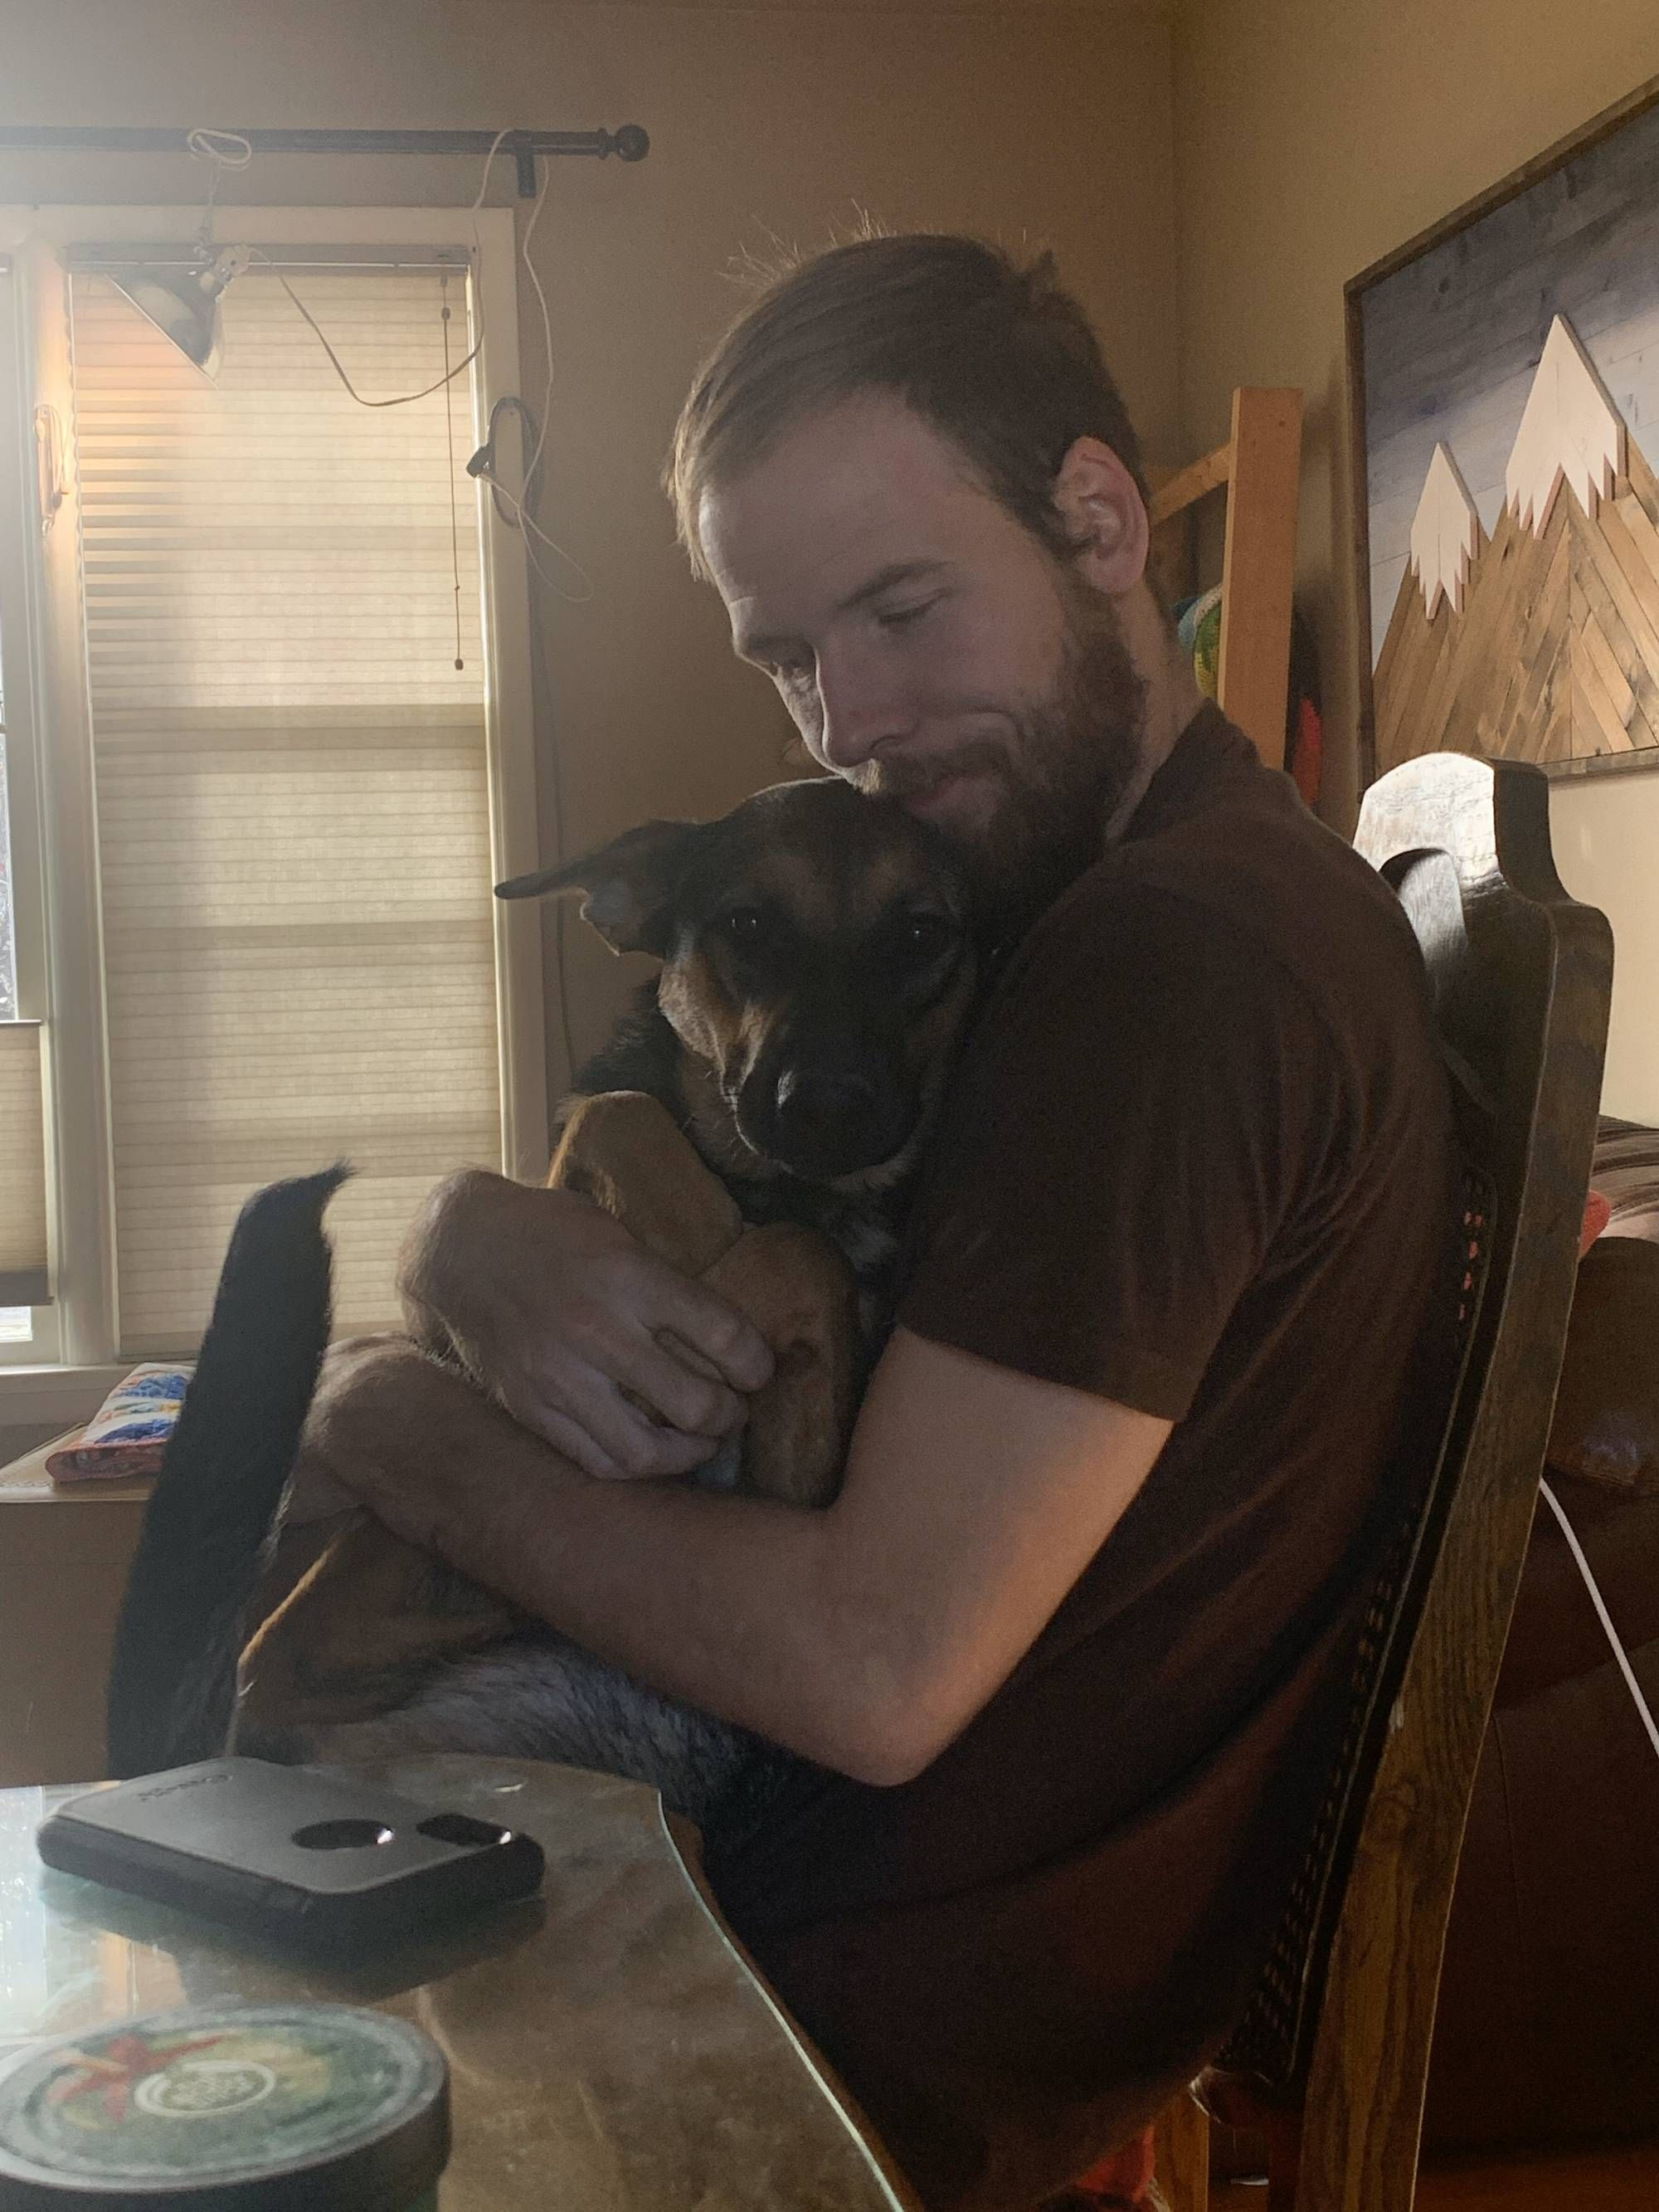 My German Shepard loves being cuddled like an baby. #Music #IndieArtist #Chicago #germanshepards My German Shepard loves being cuddled like an baby. #Music #IndieArtist #Chicago #germanshepards